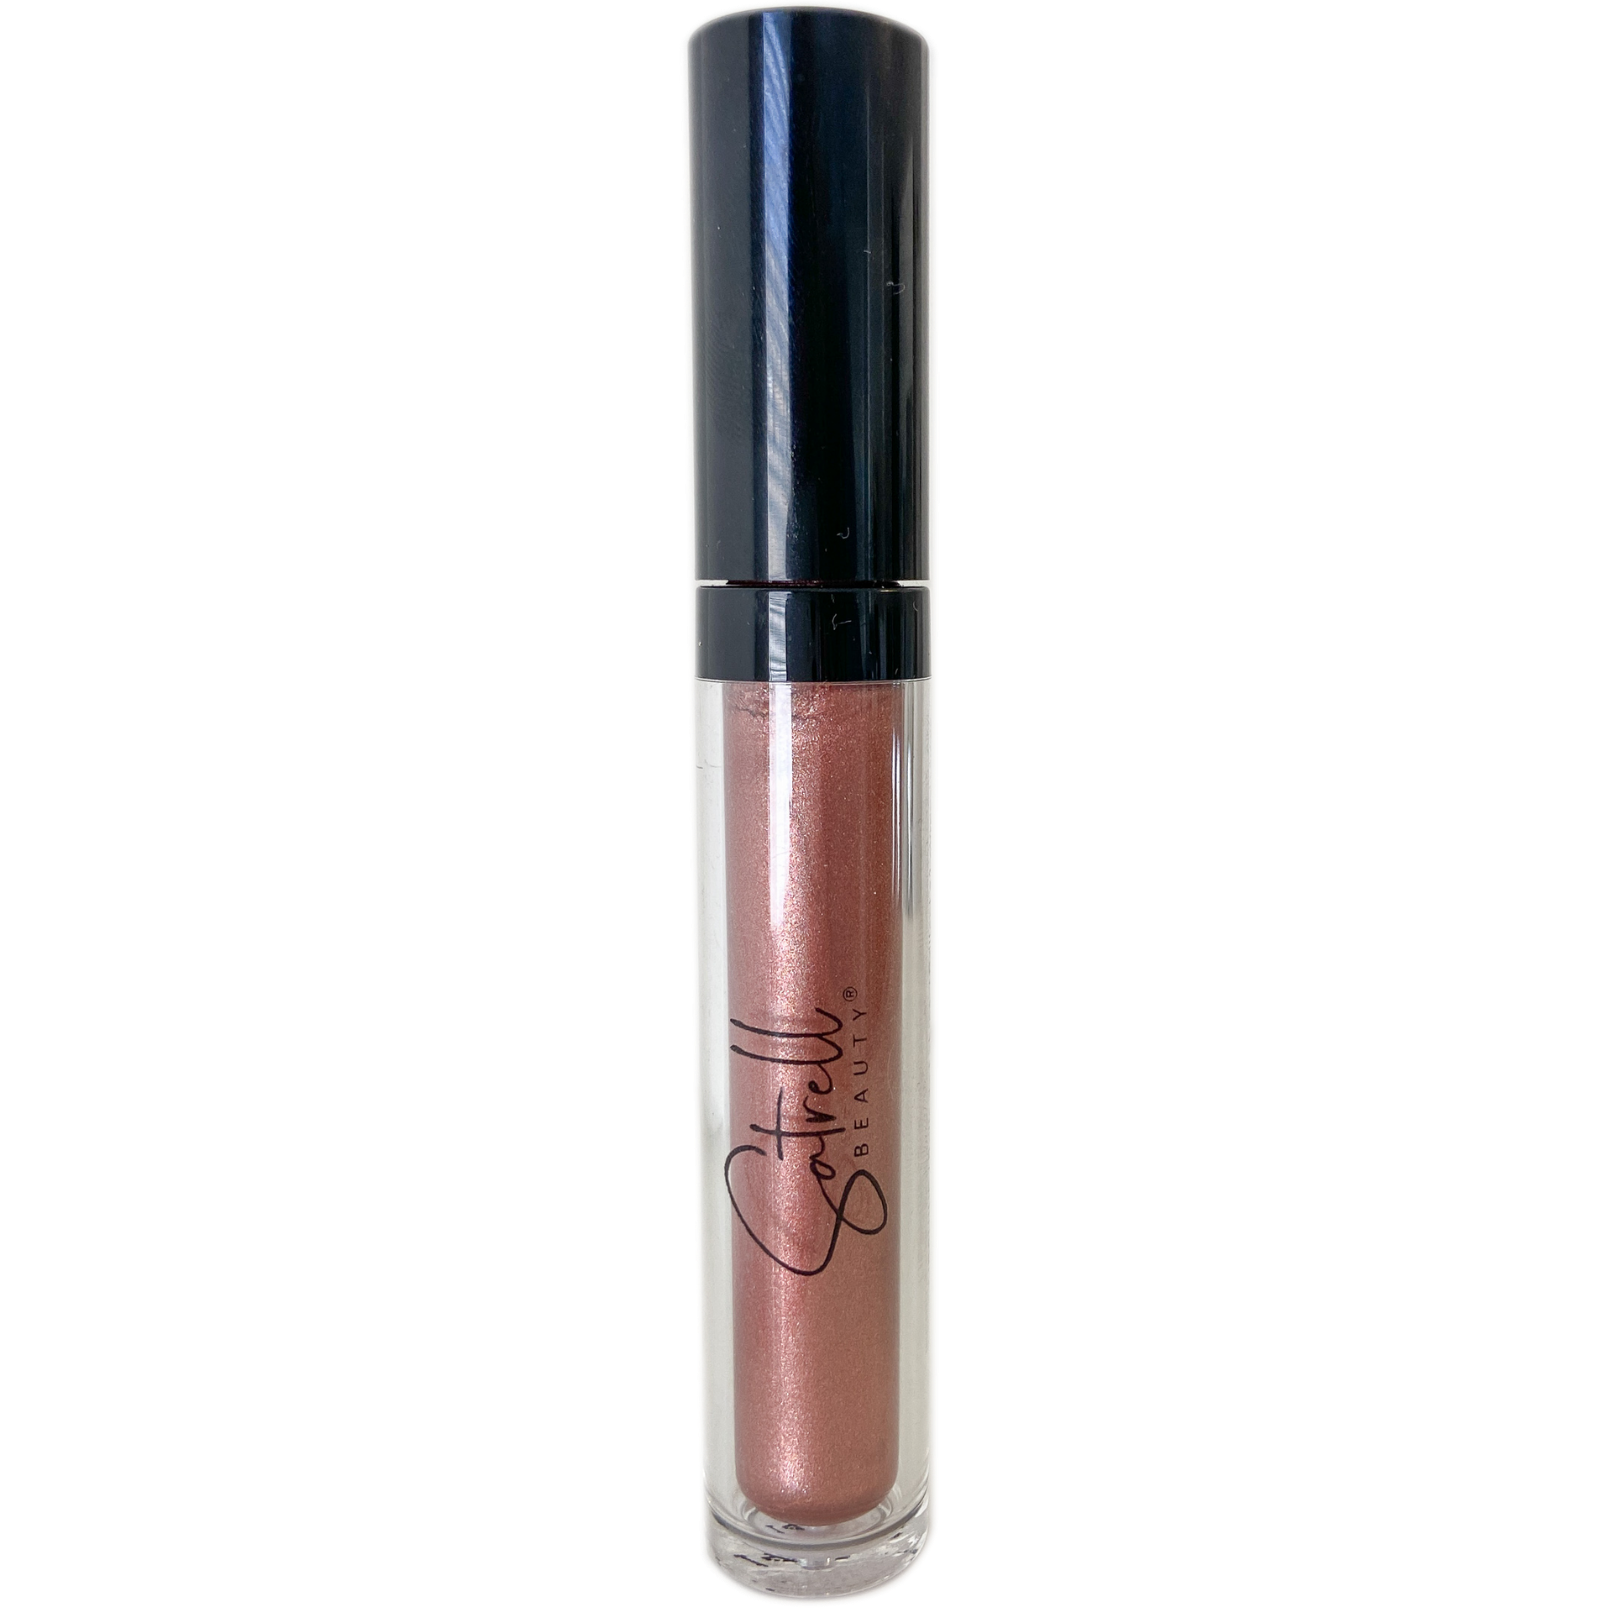 Golden Touch Lip Gloss